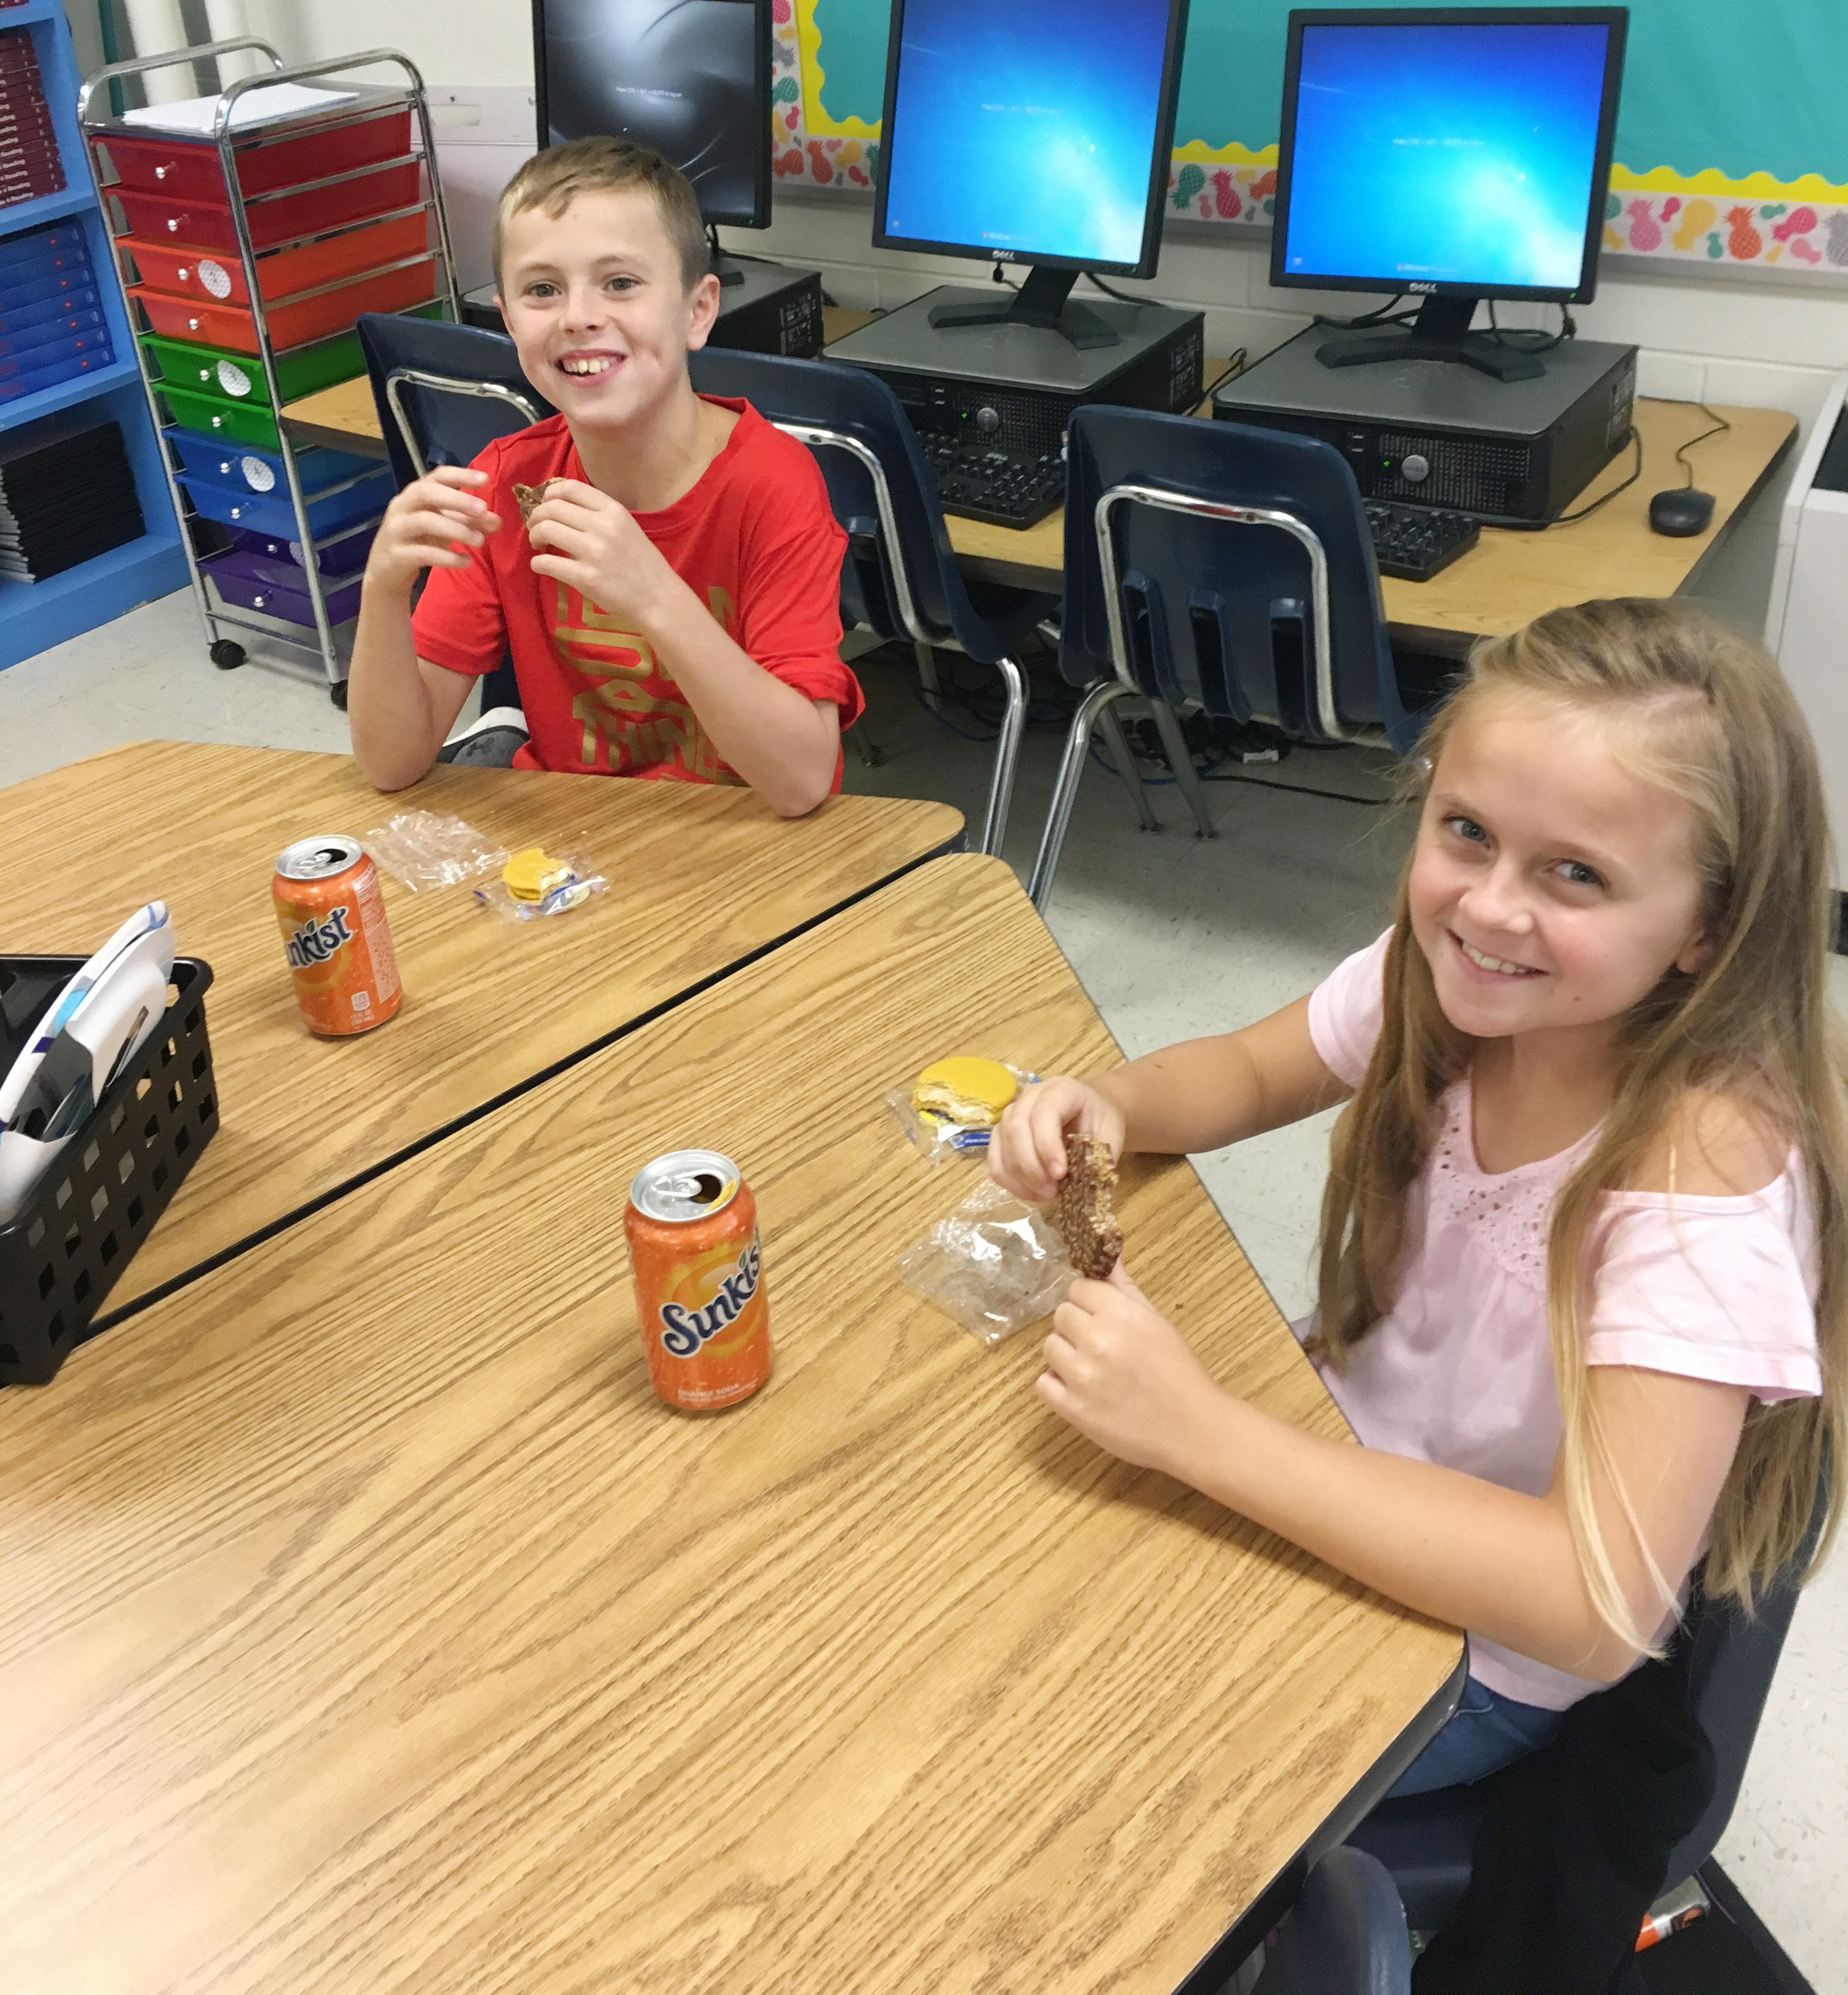 CES fourth-graders Keaton Hord, at left, and Kennedy Griffiths enjoy their Star Crunch and Moon Pie snacks.